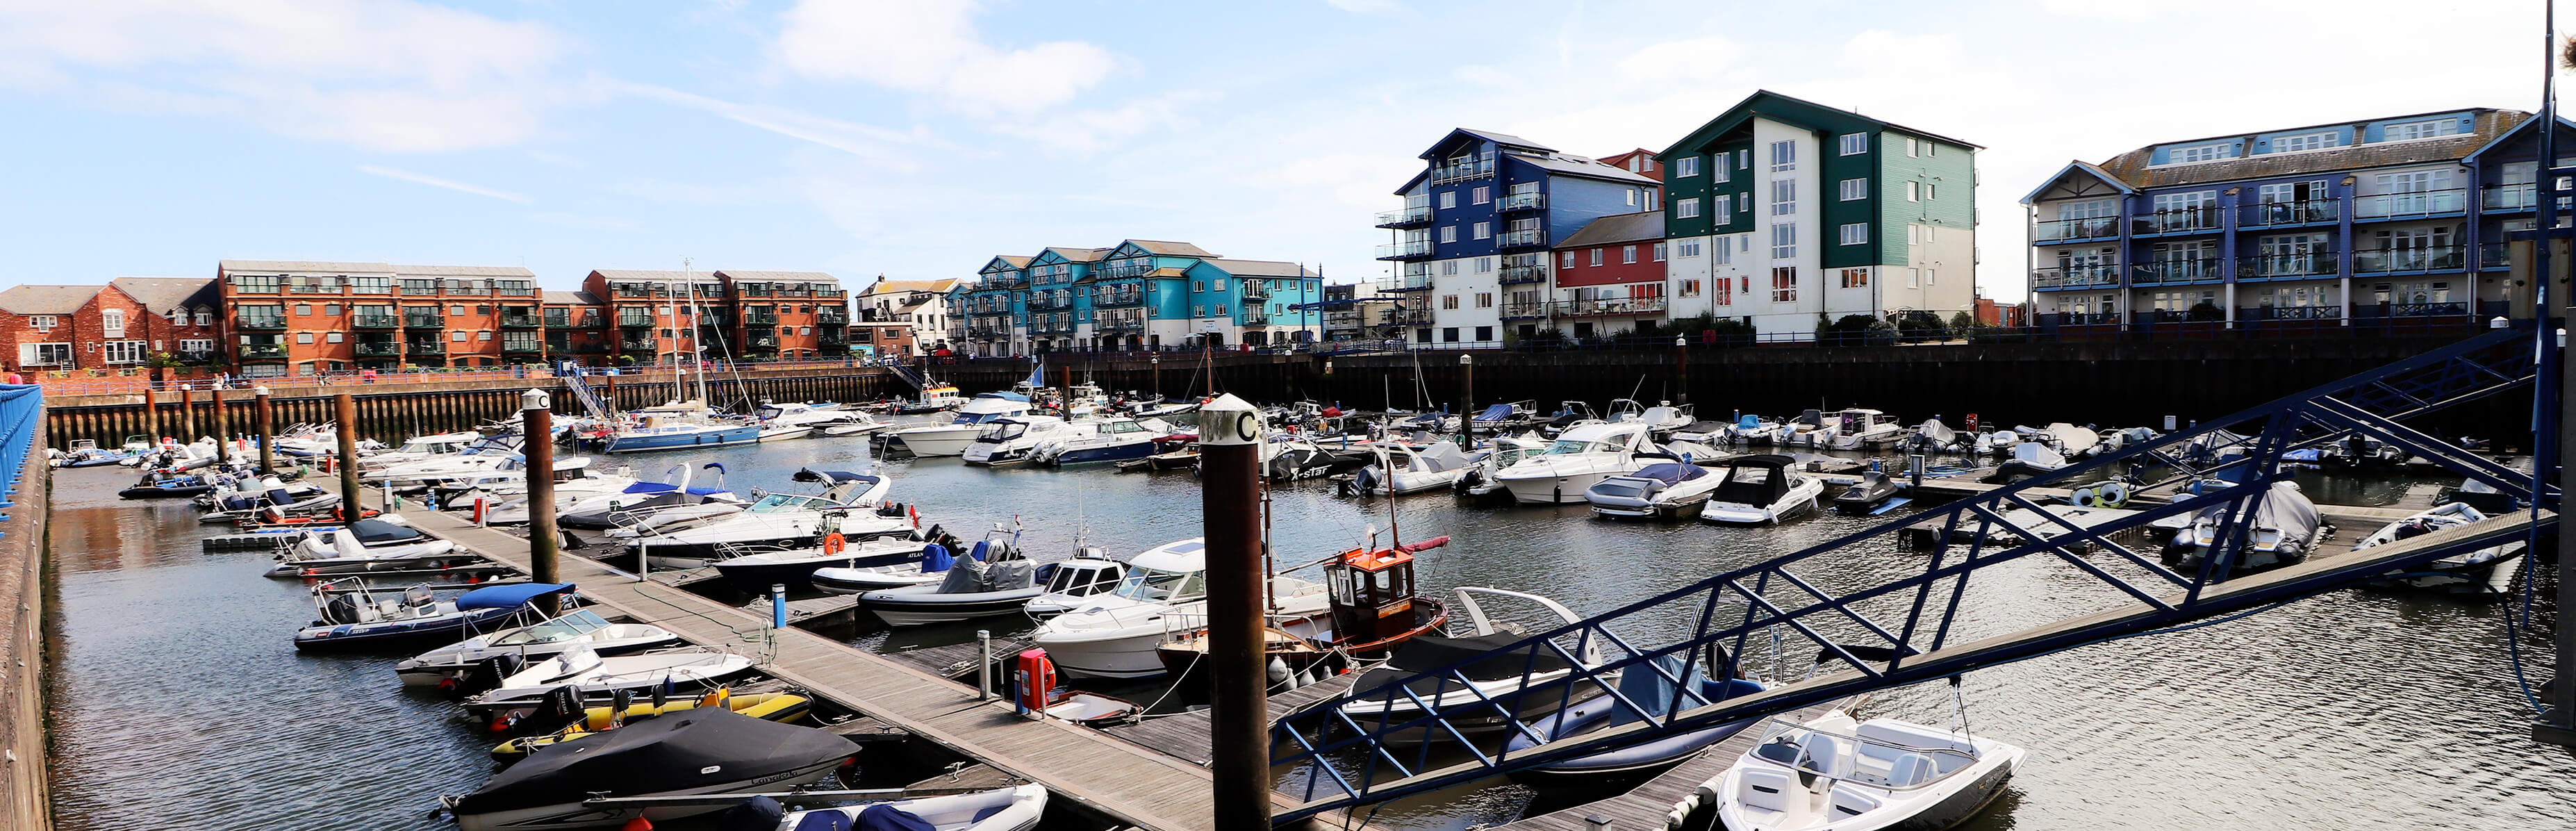 planning applications image of boats docked at the waterside